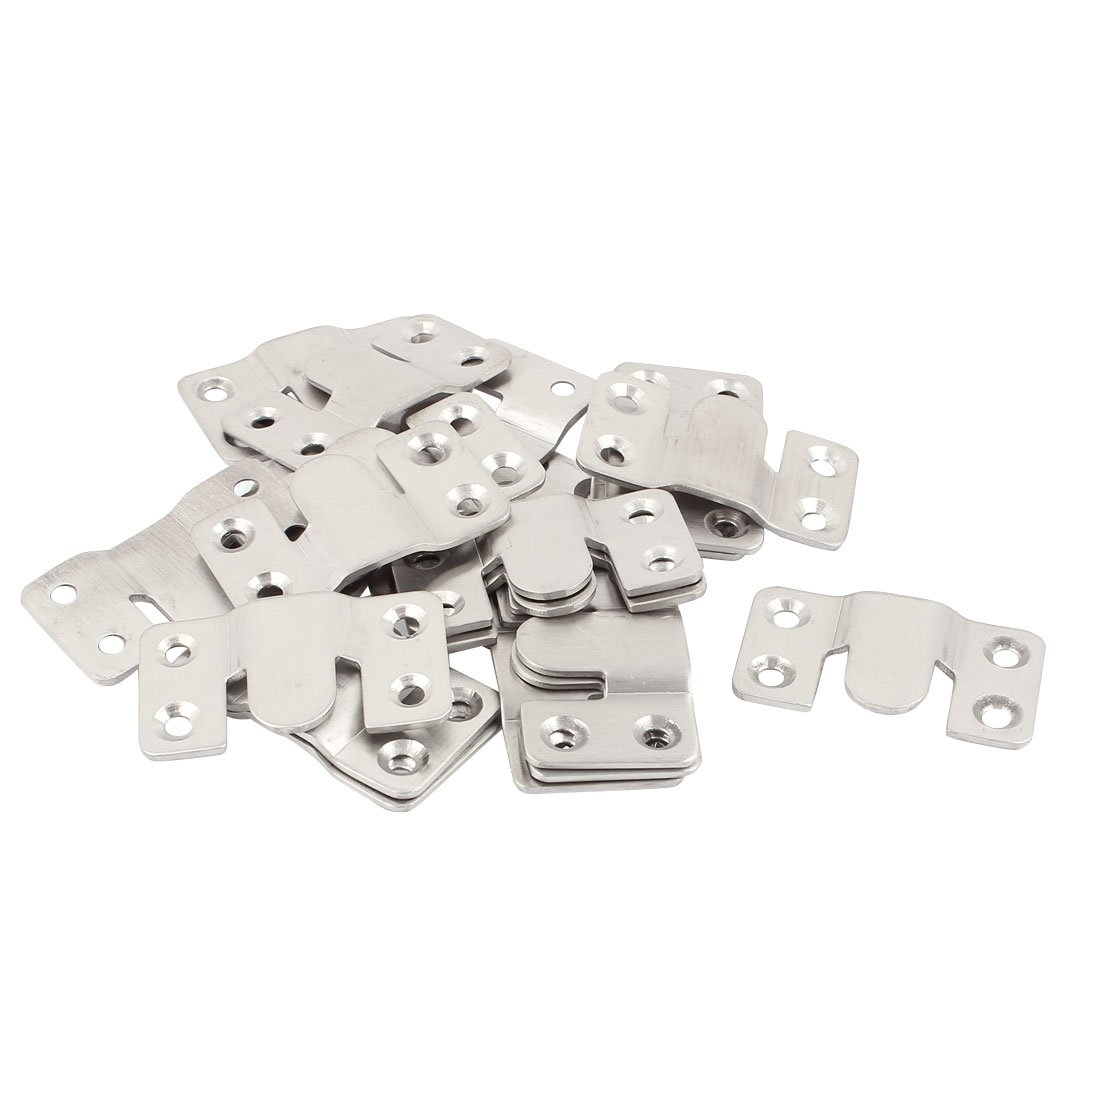 uxcell Stainless Steel Sofa Couch Sectional Furniture Connector 20pcs